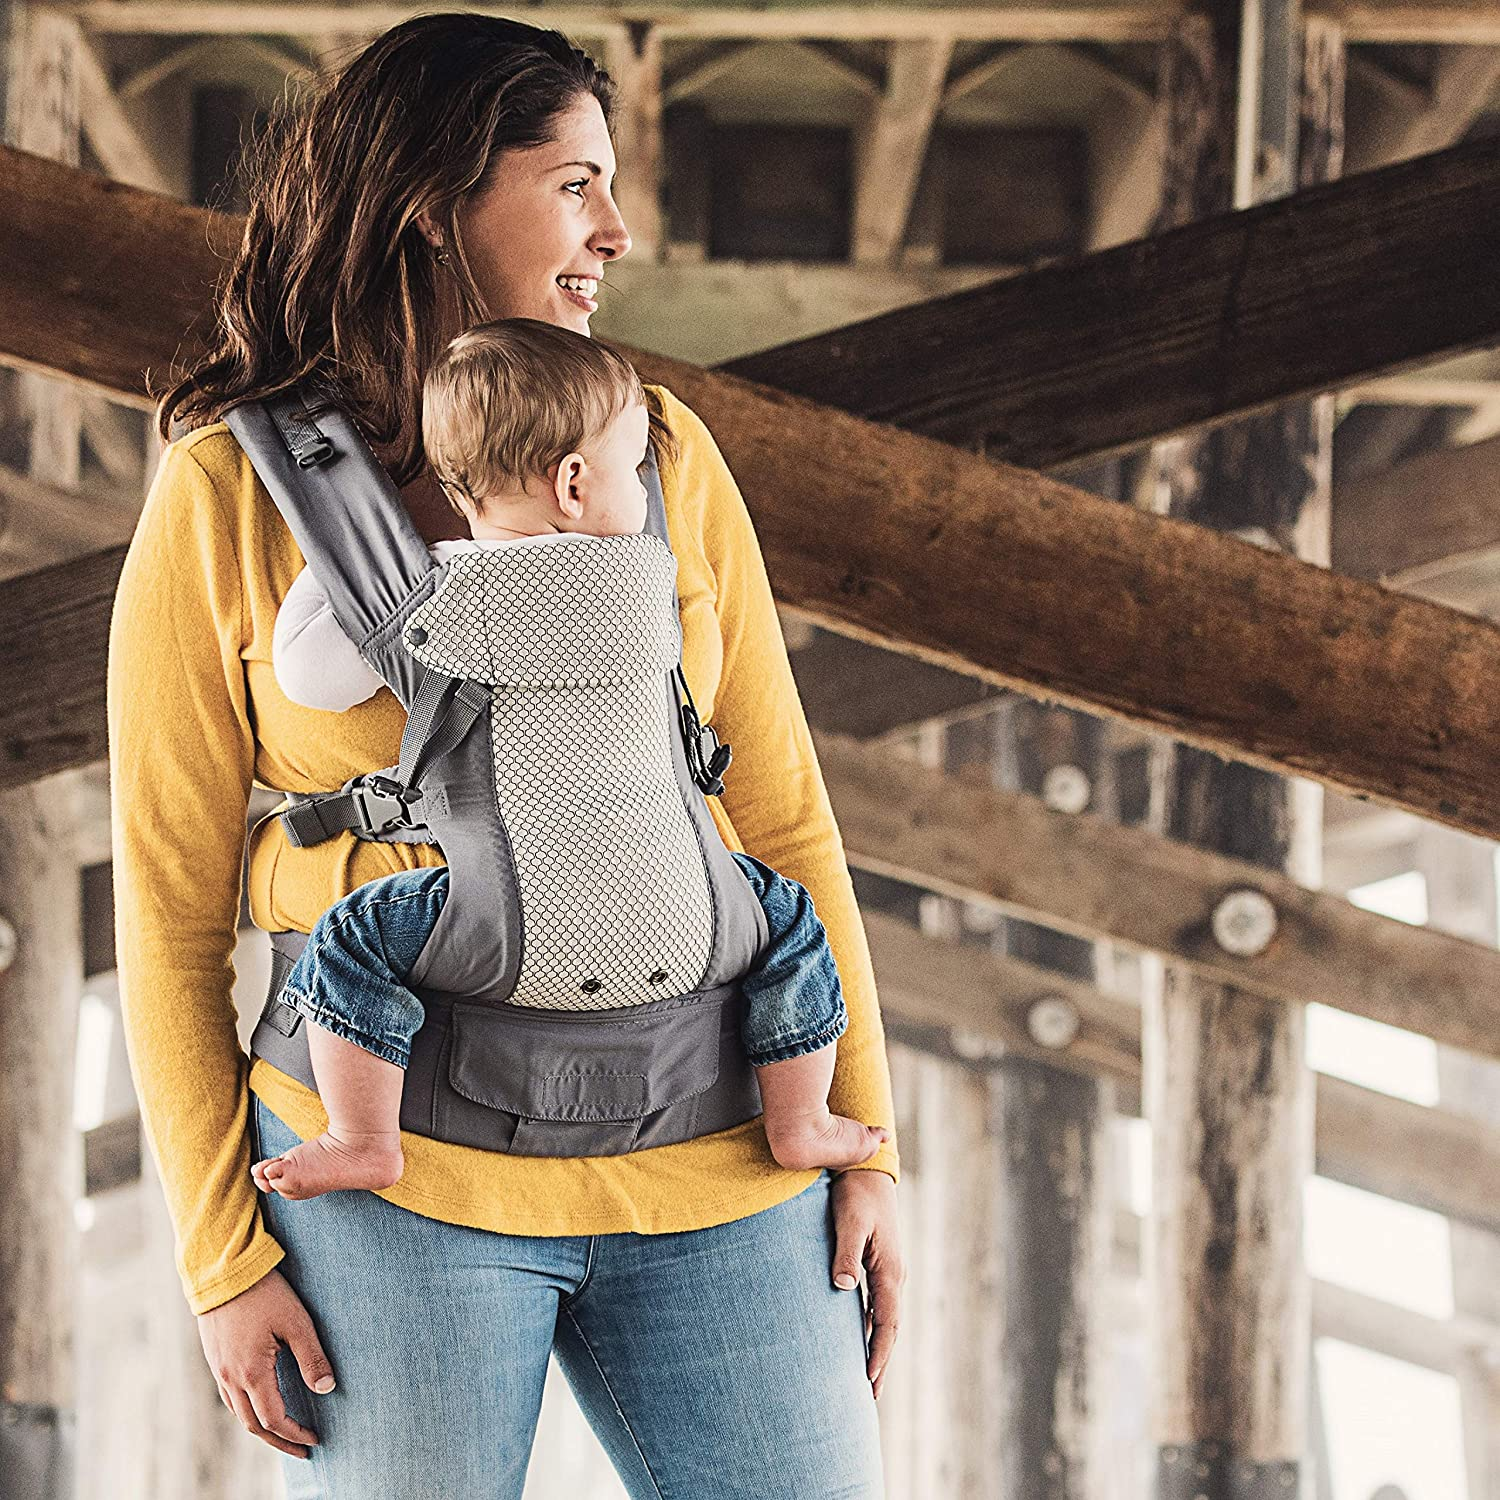 Multi-Position Soft Structured Sling w//Adjustable Straps /& Comfort Padding for Infant//Toddler Hip Support Change of Heart Gemini Performance Baby Carrier By Beco